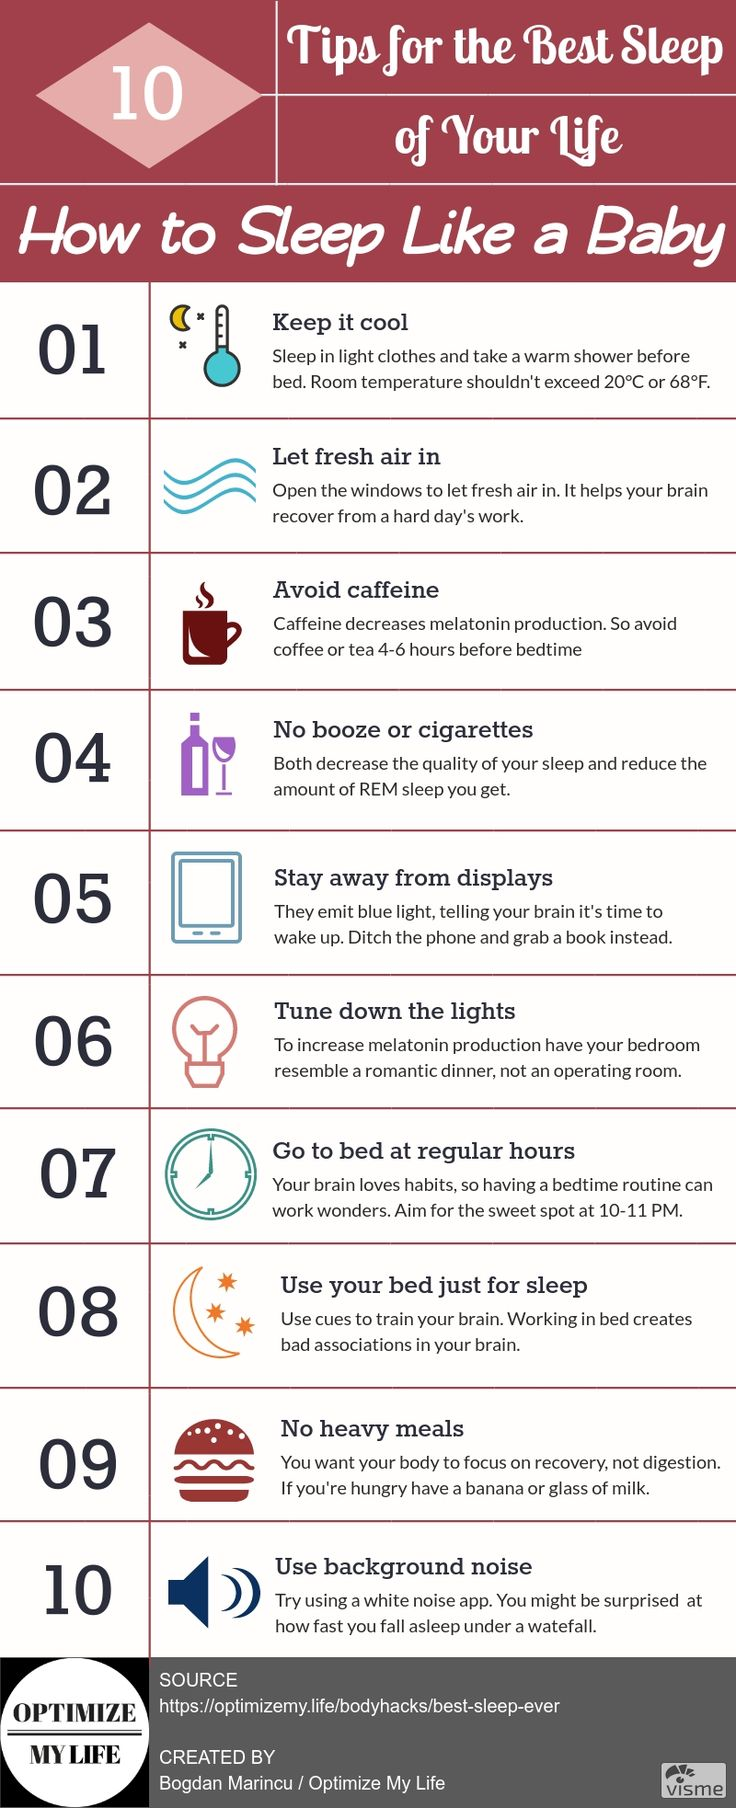 10 simple tips to get the best sleep of your life. Just like you used to after your mum gave you a warm bath and wrapped you in nice smelling bedsheets